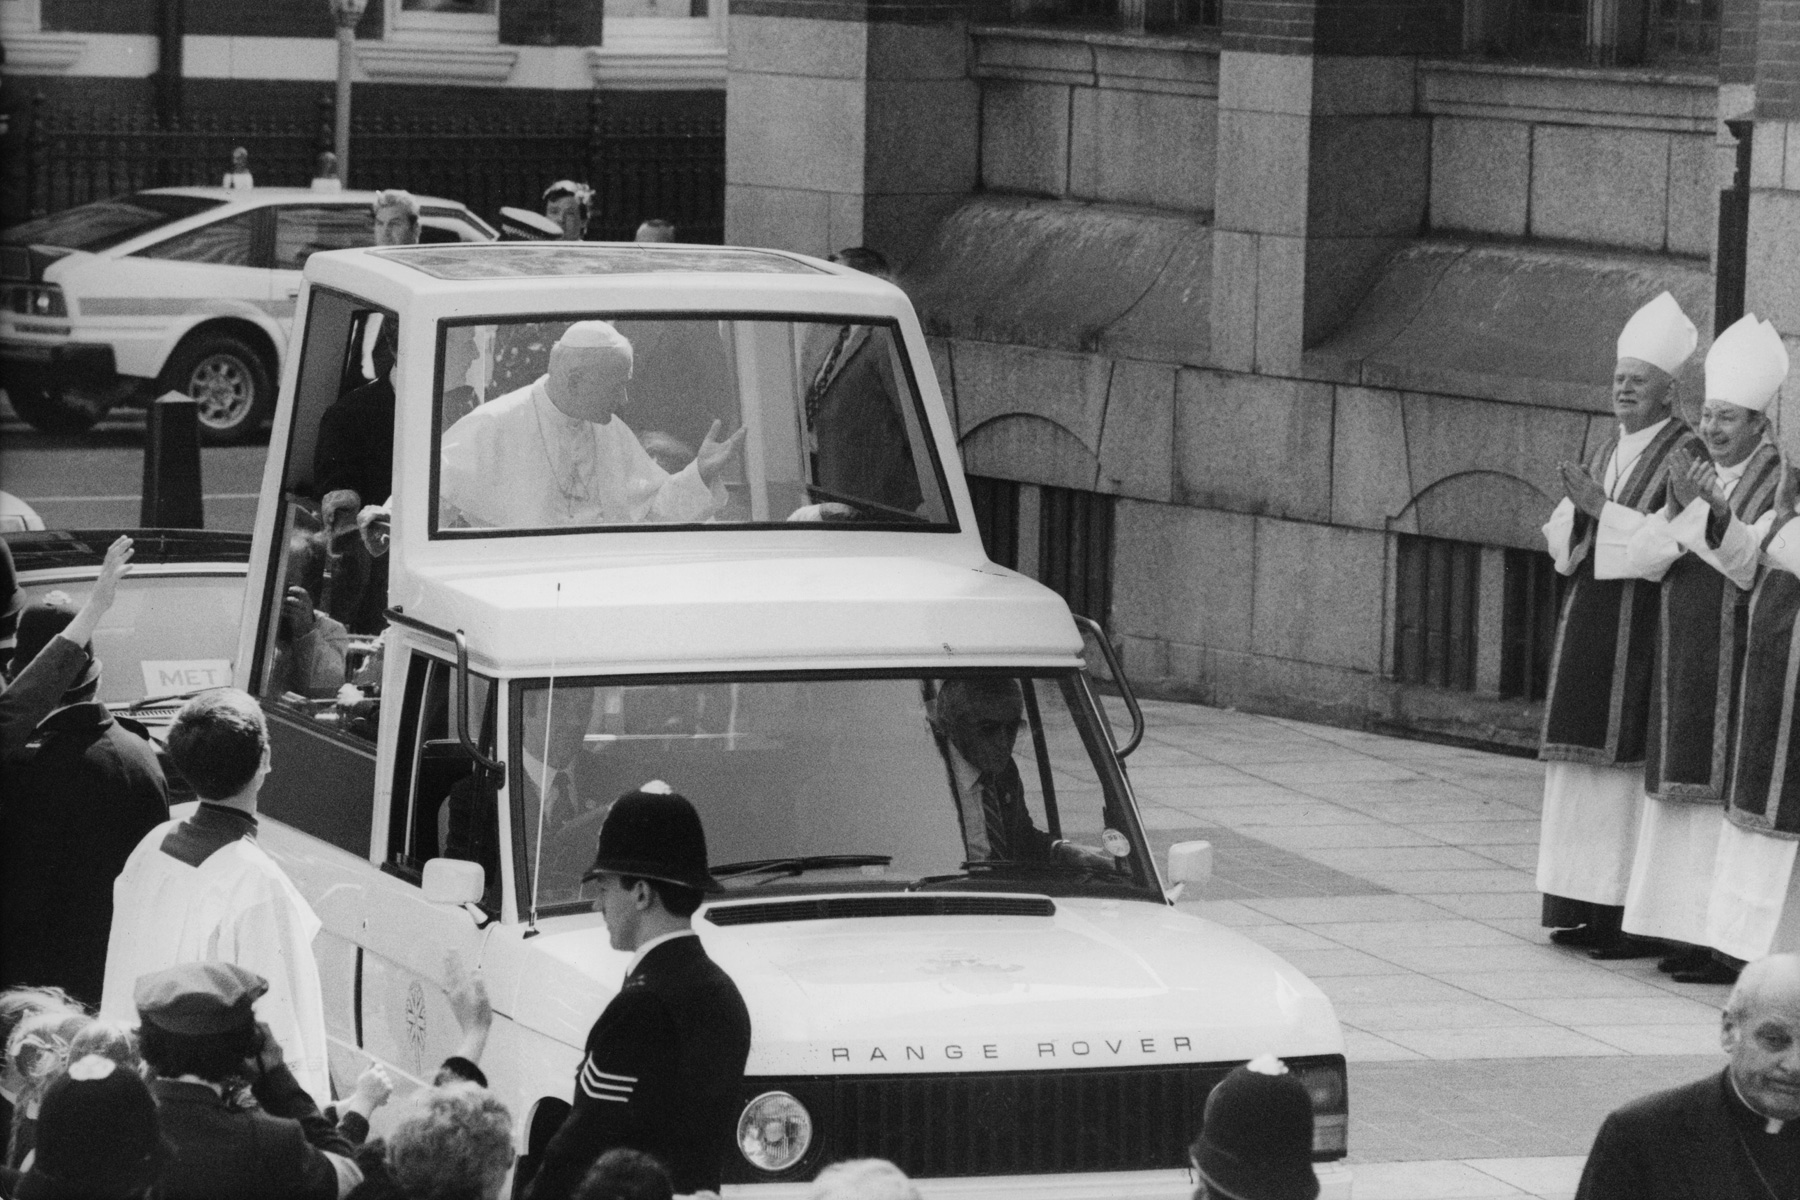 The visit of the Pope